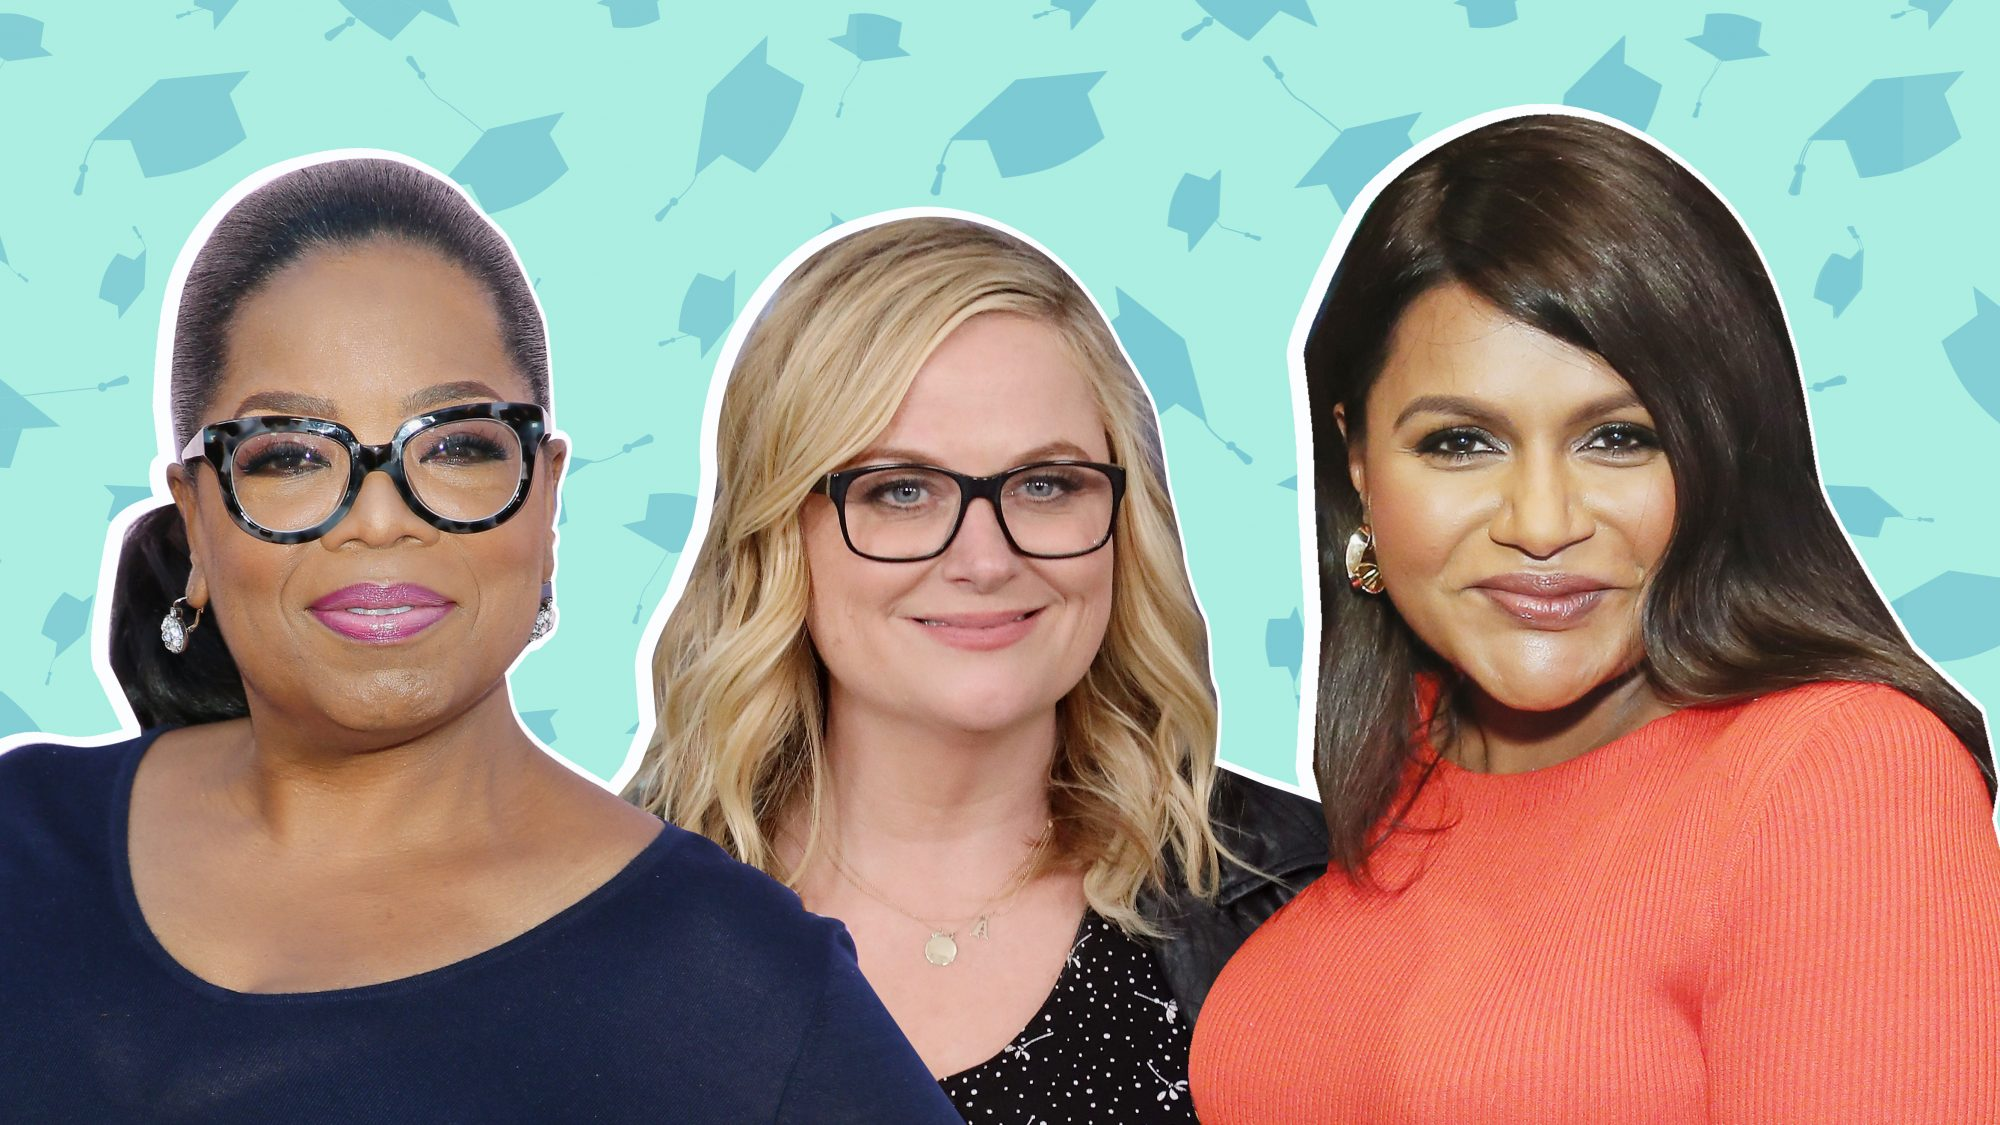 Oprah Winfrey, Amy Poehler, and Mindy Kaling encouraging graduation speech quotes